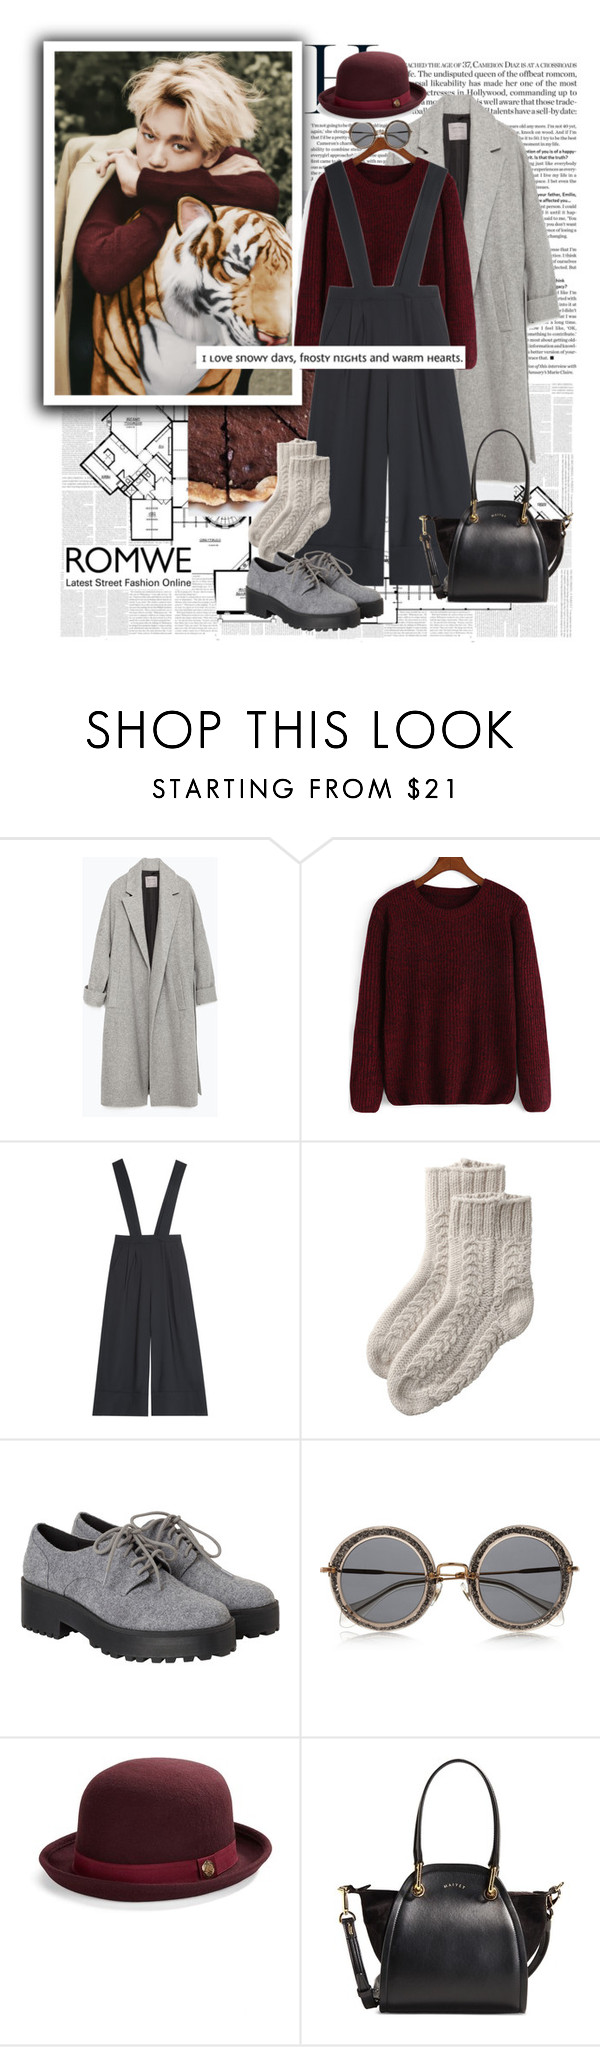 """""""gotta love him"""" by ani-onni ❤ liked on Polyvore featuring Zara, TIBI, Toast, Monki, Miu Miu, Vince Camuto and Maiyet"""